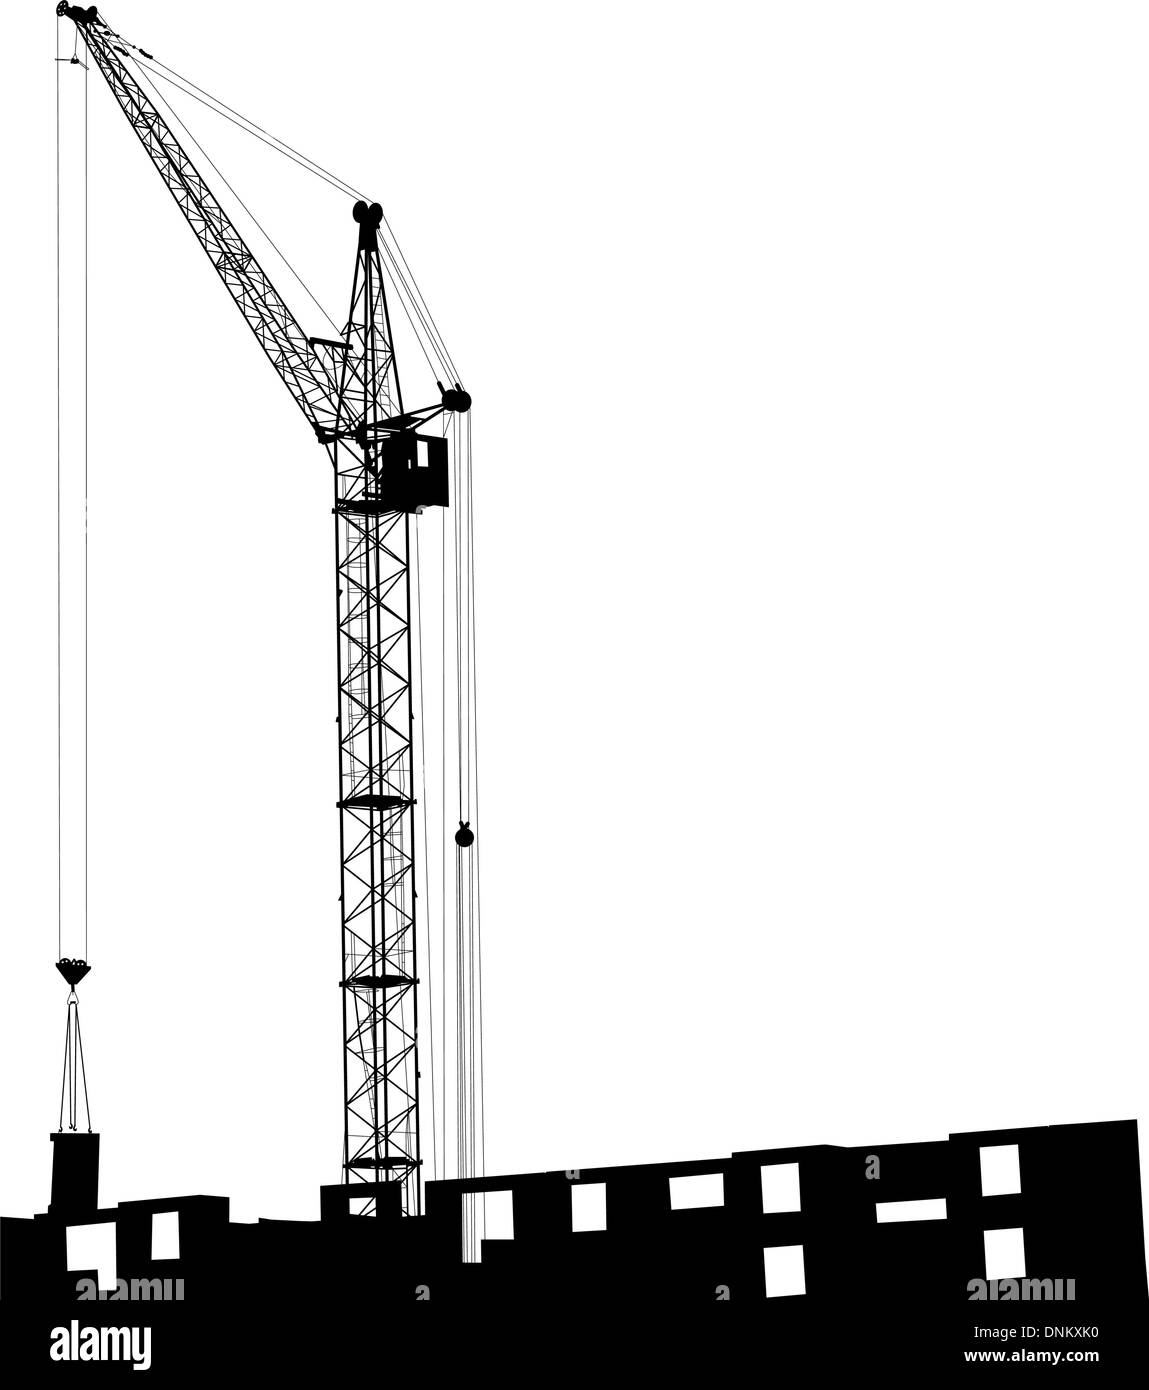 Silhouette of one cranes working on the building on a white background Stock Vector